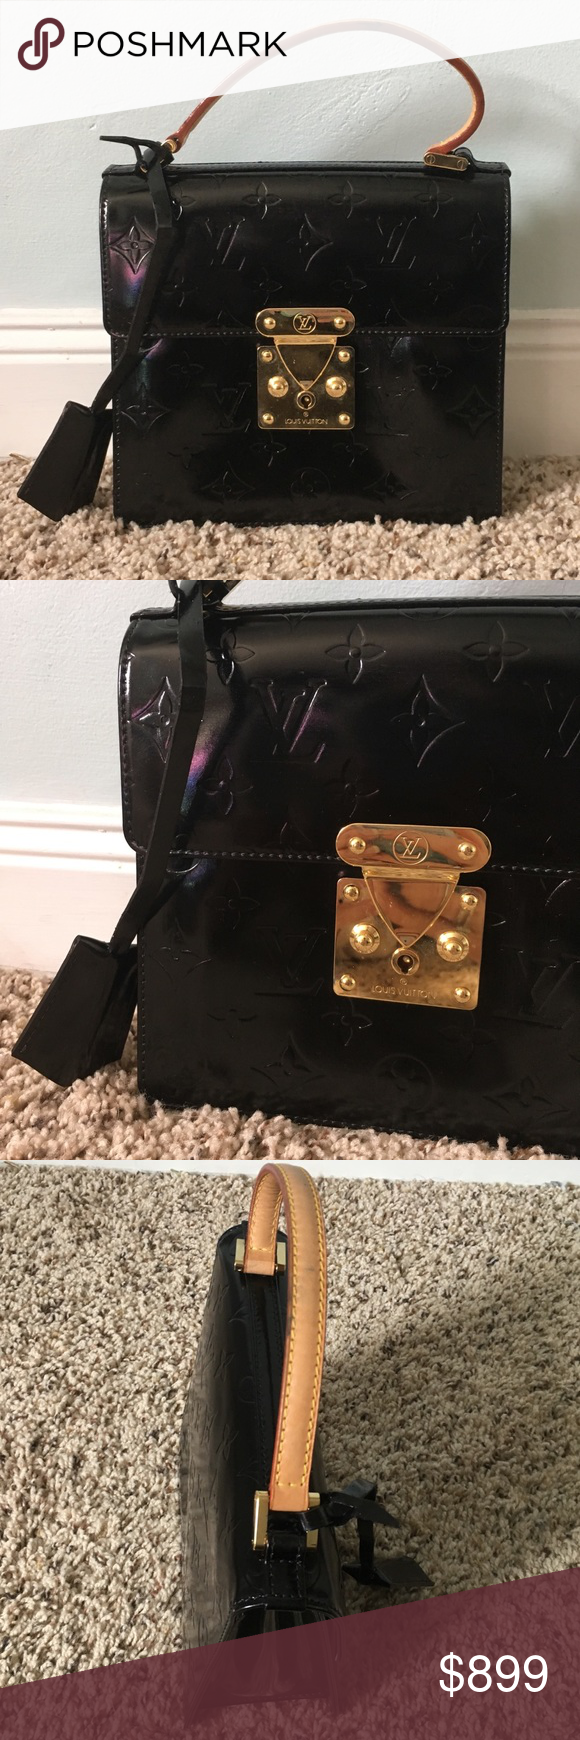 5e0ccd01eb803 Authentic LV Spring Street Vernis Mini Bag Authentic Louis Vuitton spring  street Vernis. Refurbished black patent leather